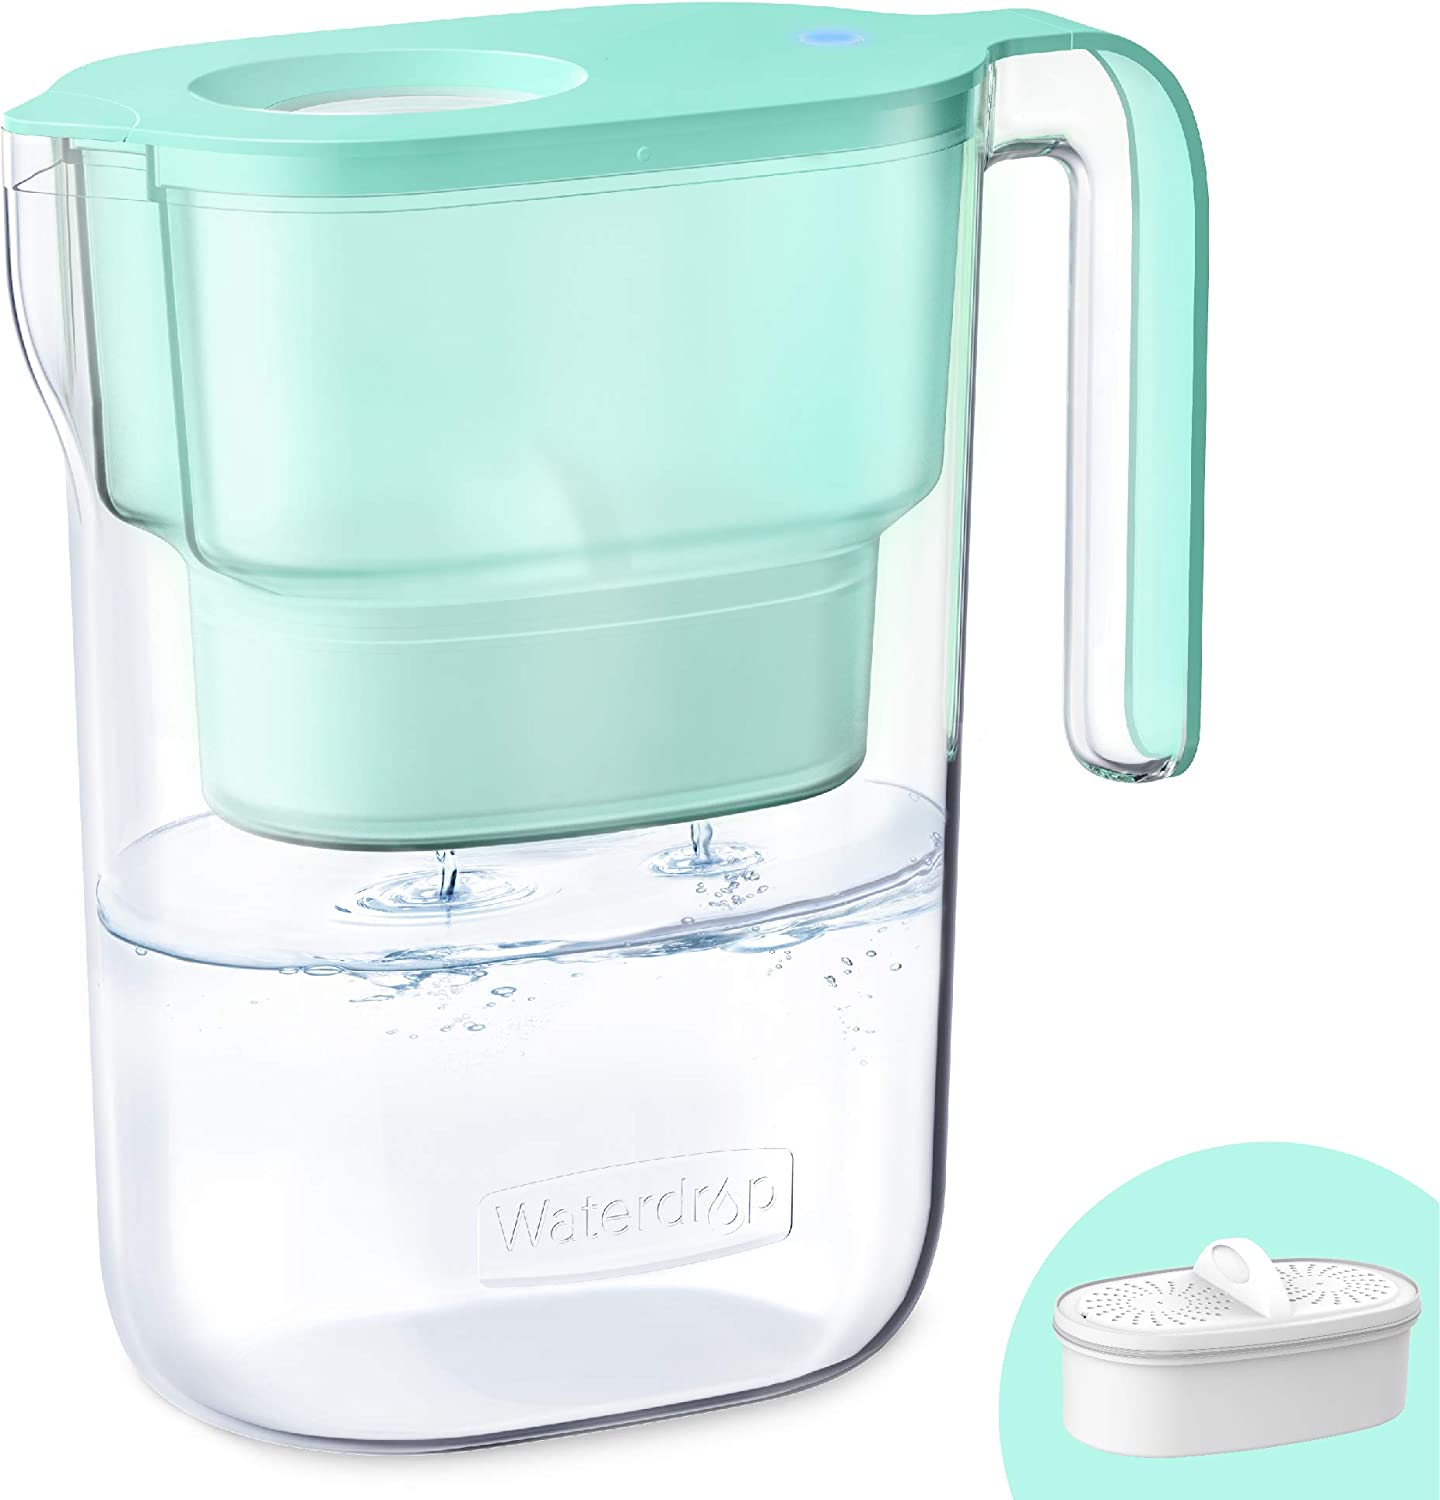 Waterdrop 5-Cup Water Filter Pitcher with 1 Filter, Long-Lasting (200 gallons), 5X Times Lifetime Filtration Jug, Reduces Lead, Fluoride, Chlorine and More, BPA Free, Green, Model: WD-PT-05G